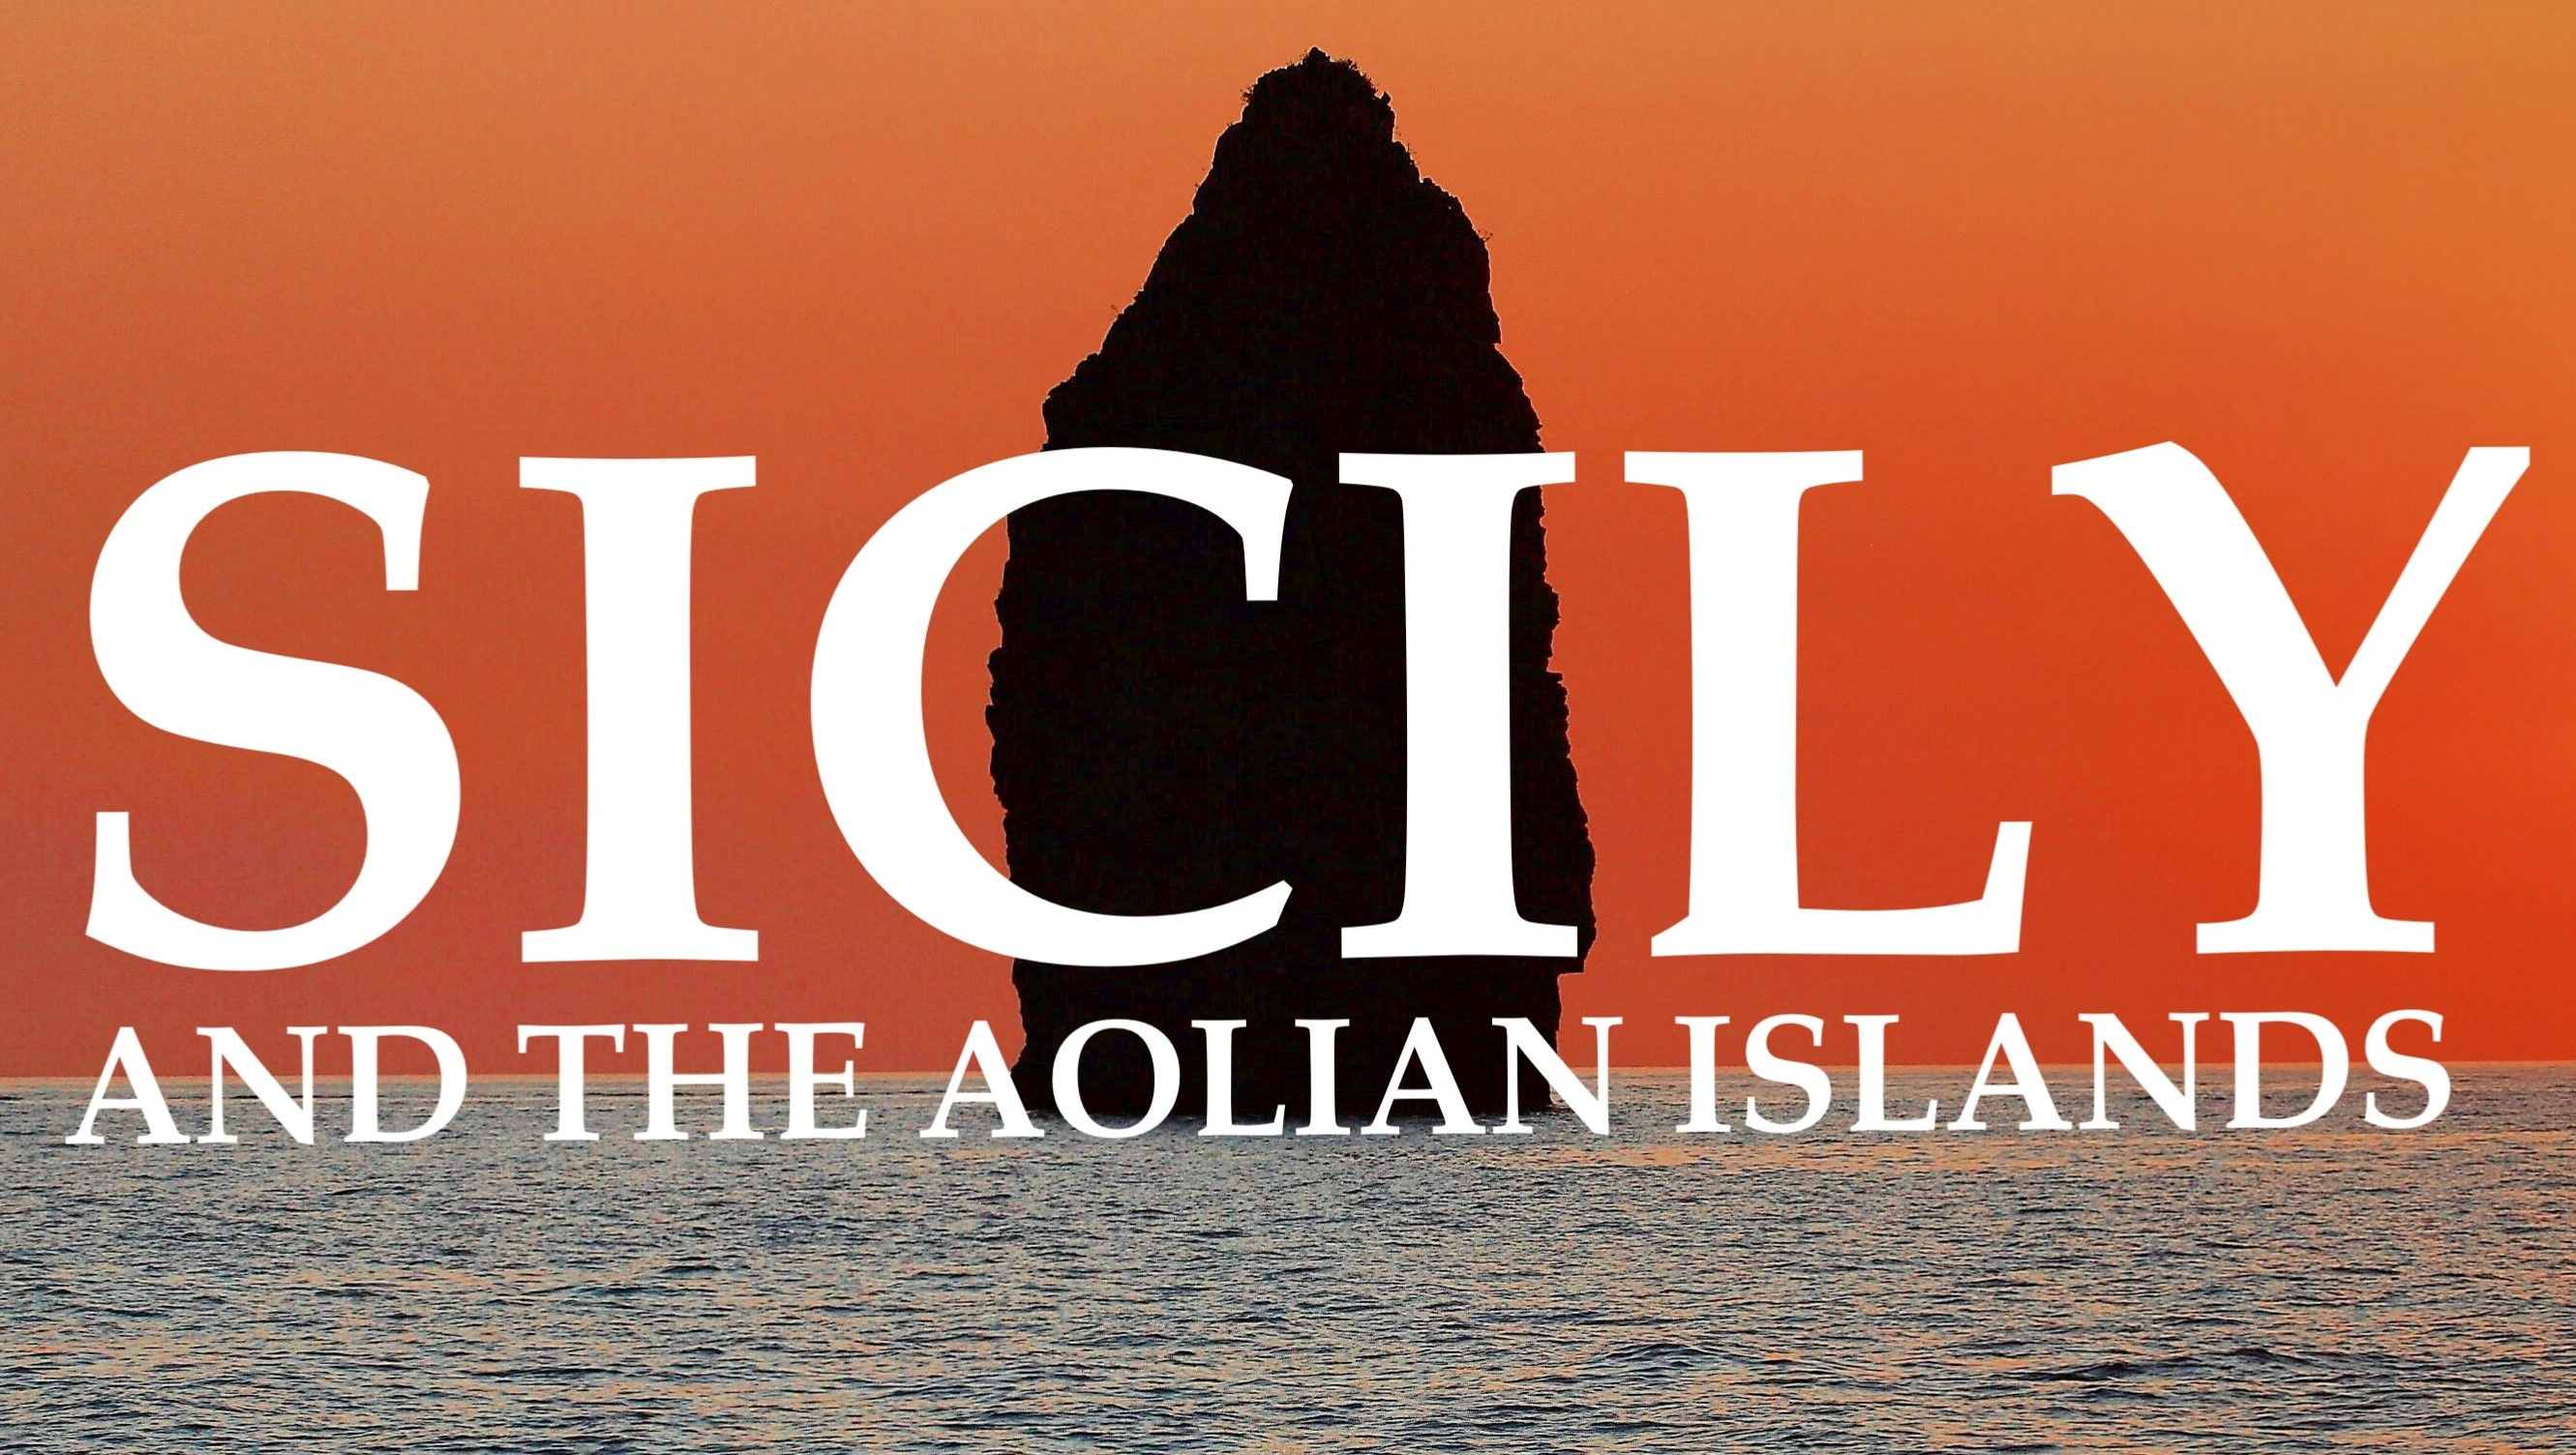 SICILY AND THE AOLIAN ISLANDS